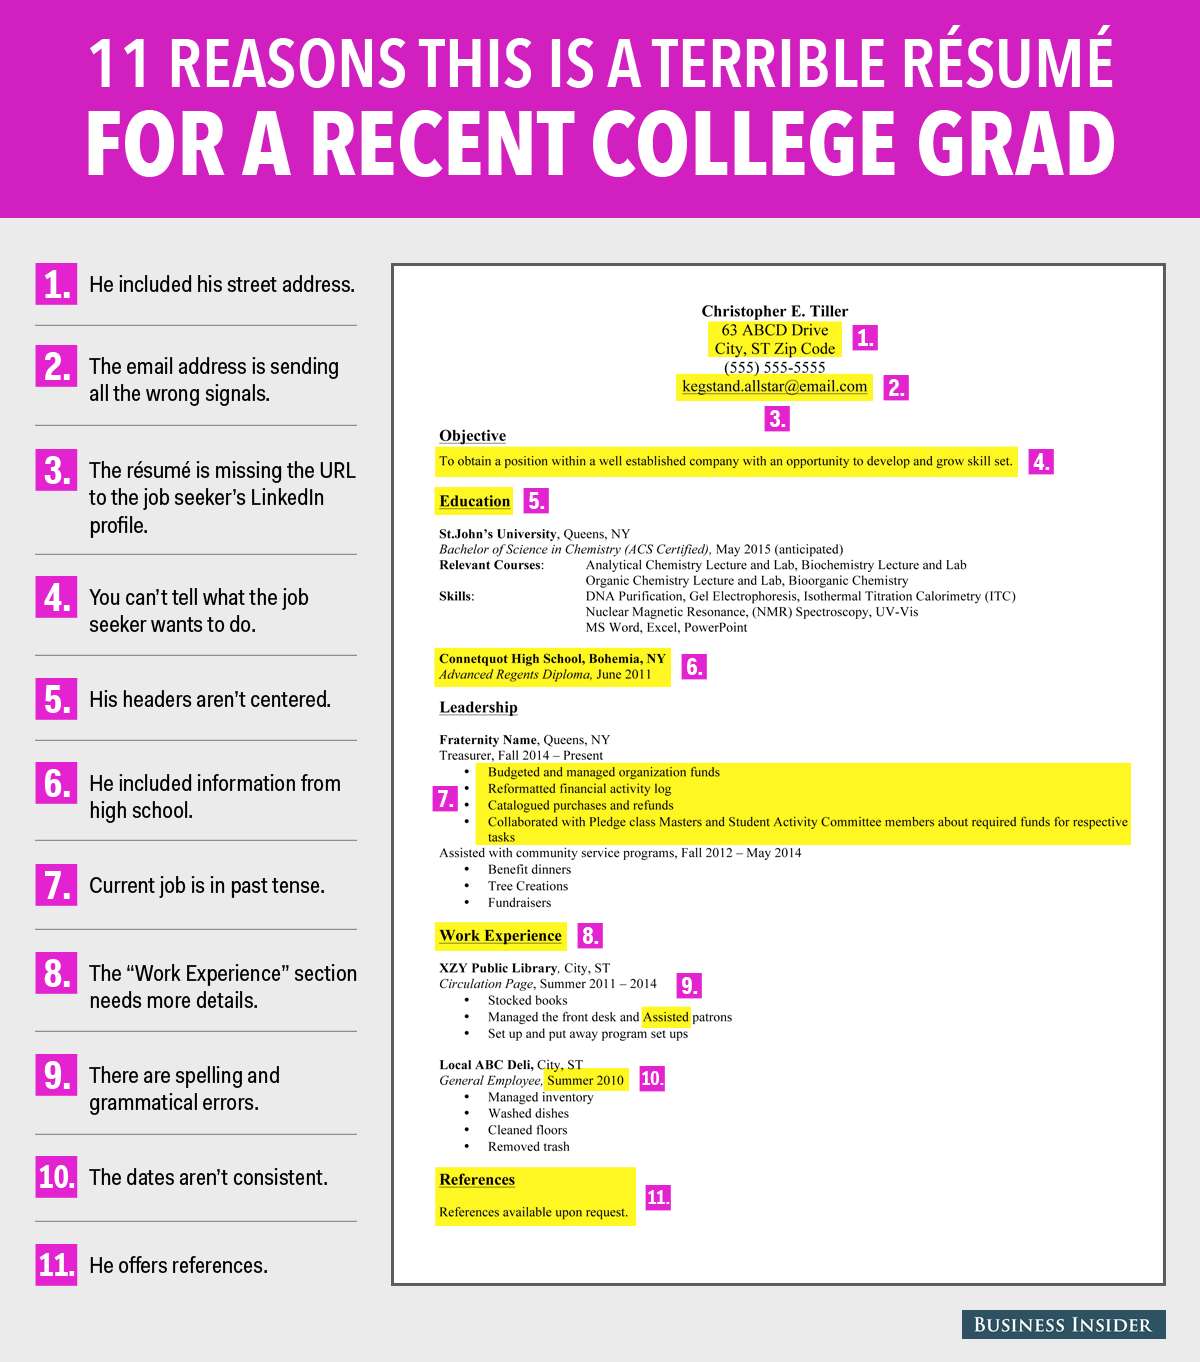 resumes for college grads